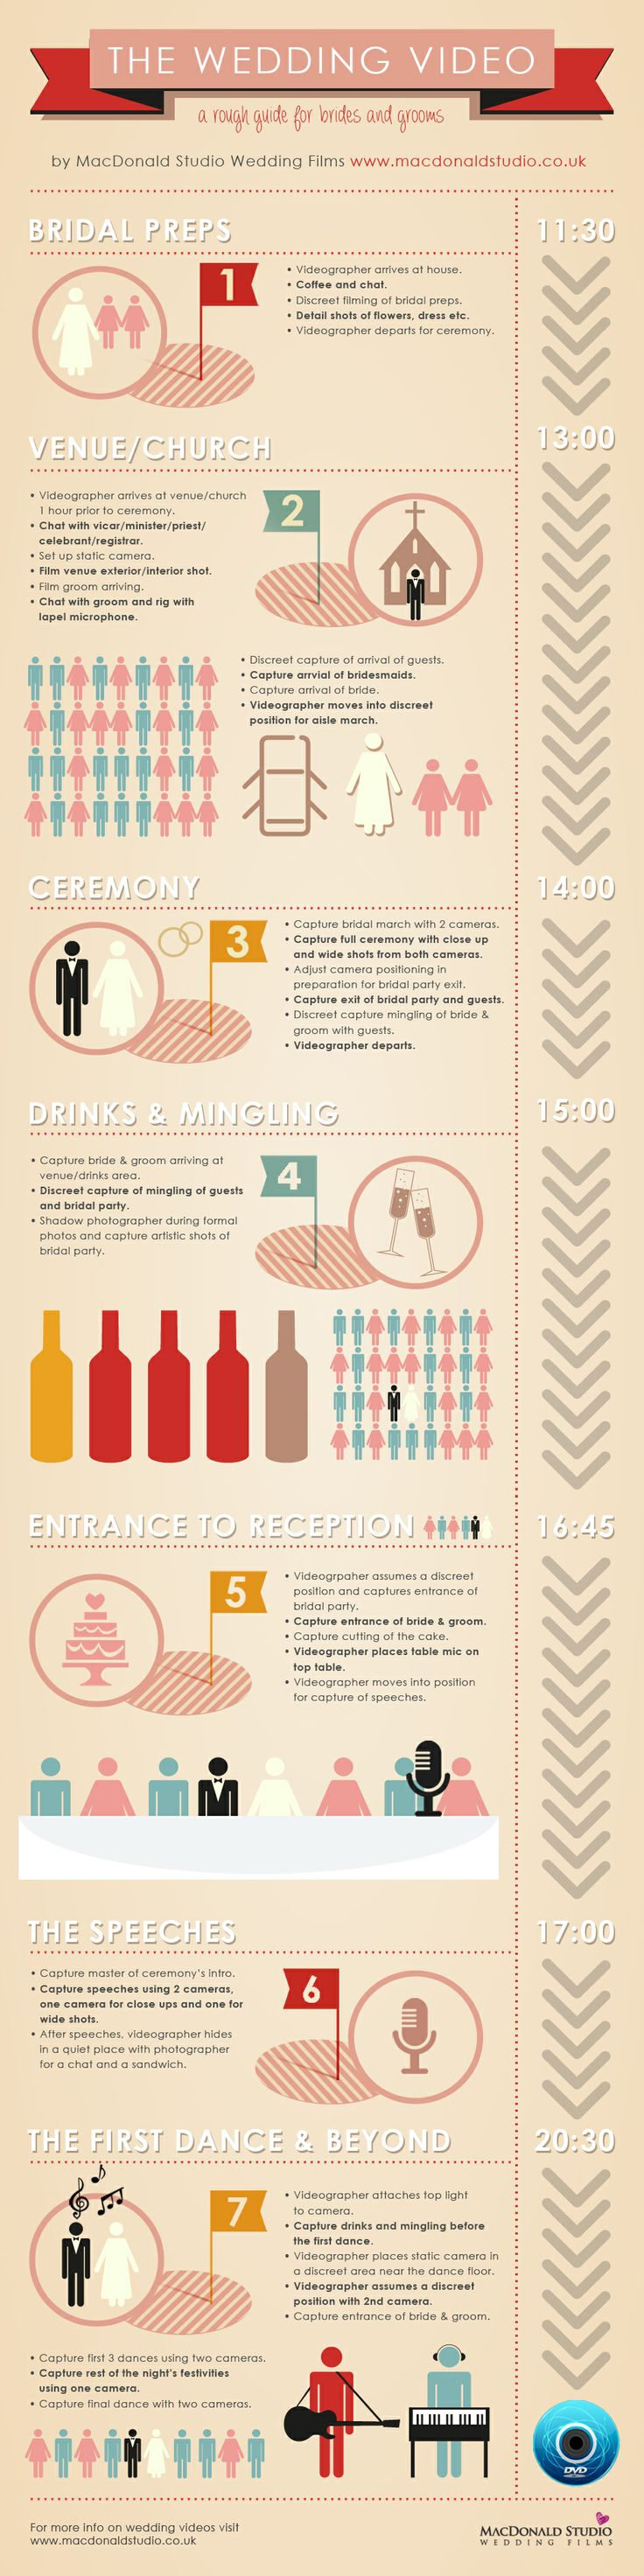 Great Infographic For Understanding Wedding Video Set Up Wedding Video Wedding Video Tips Wedding Photography And Videography